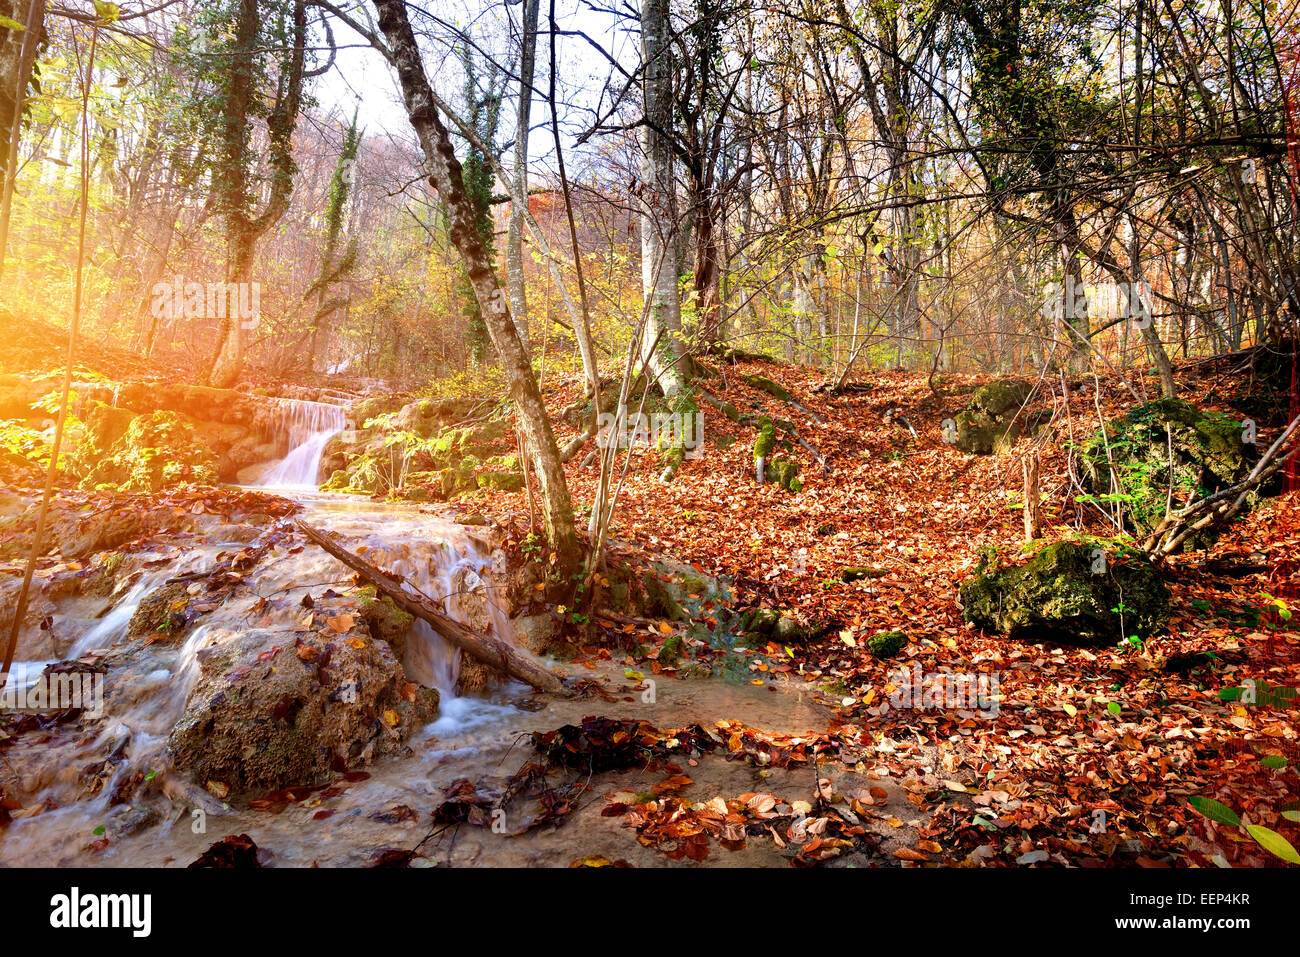 Creek in autumn mountain forest at sunrise - Stock Image